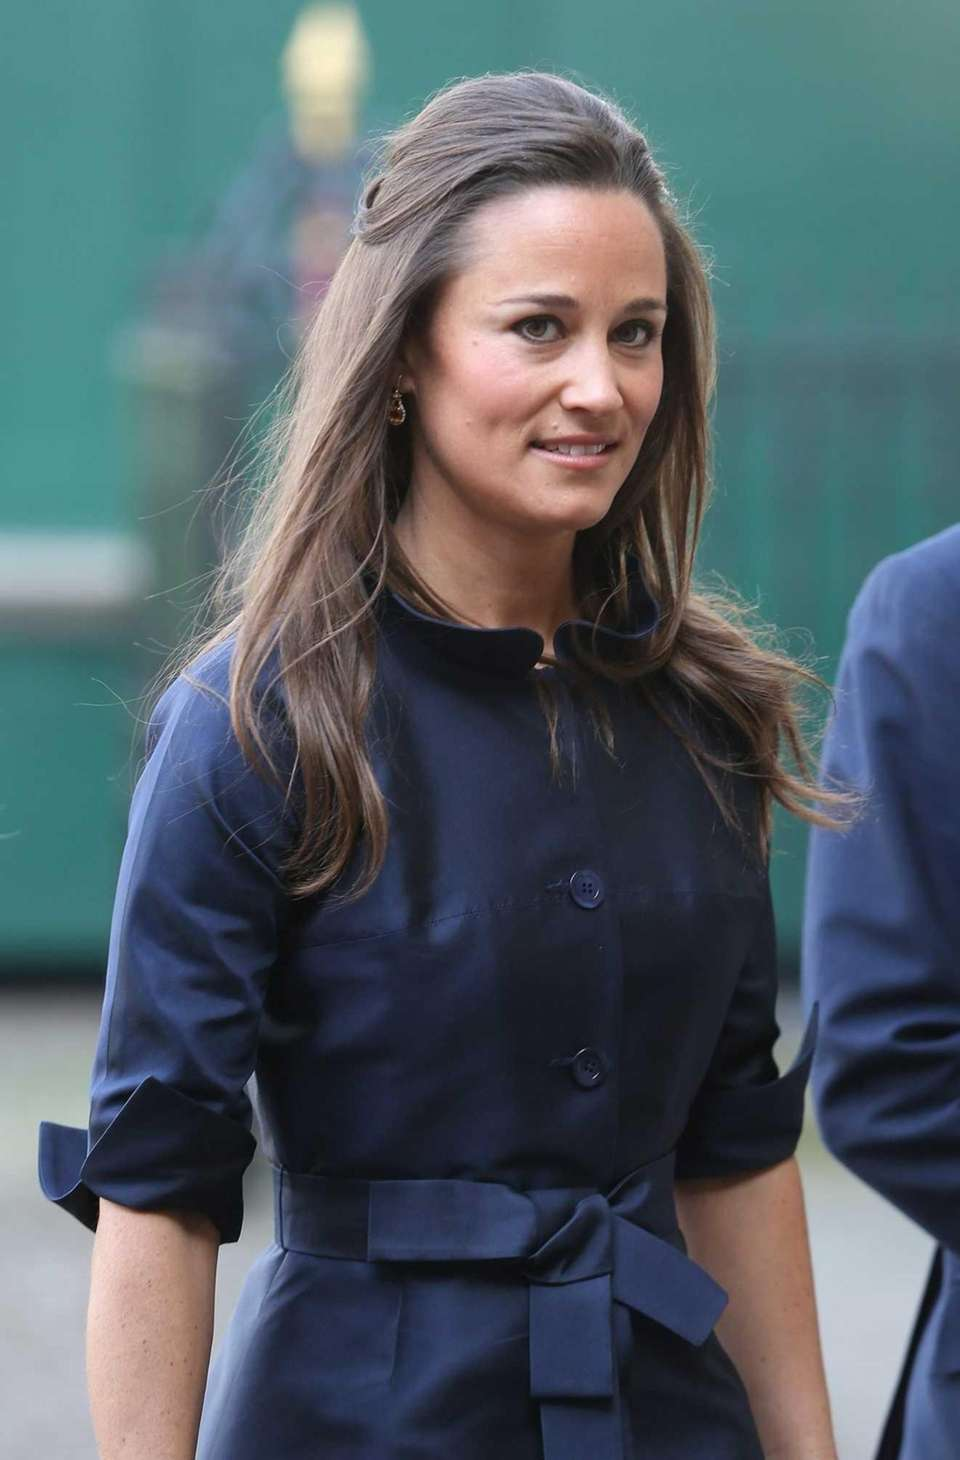 LONDON, ENGLAND - MARCH 13: Pippa Middleton attends